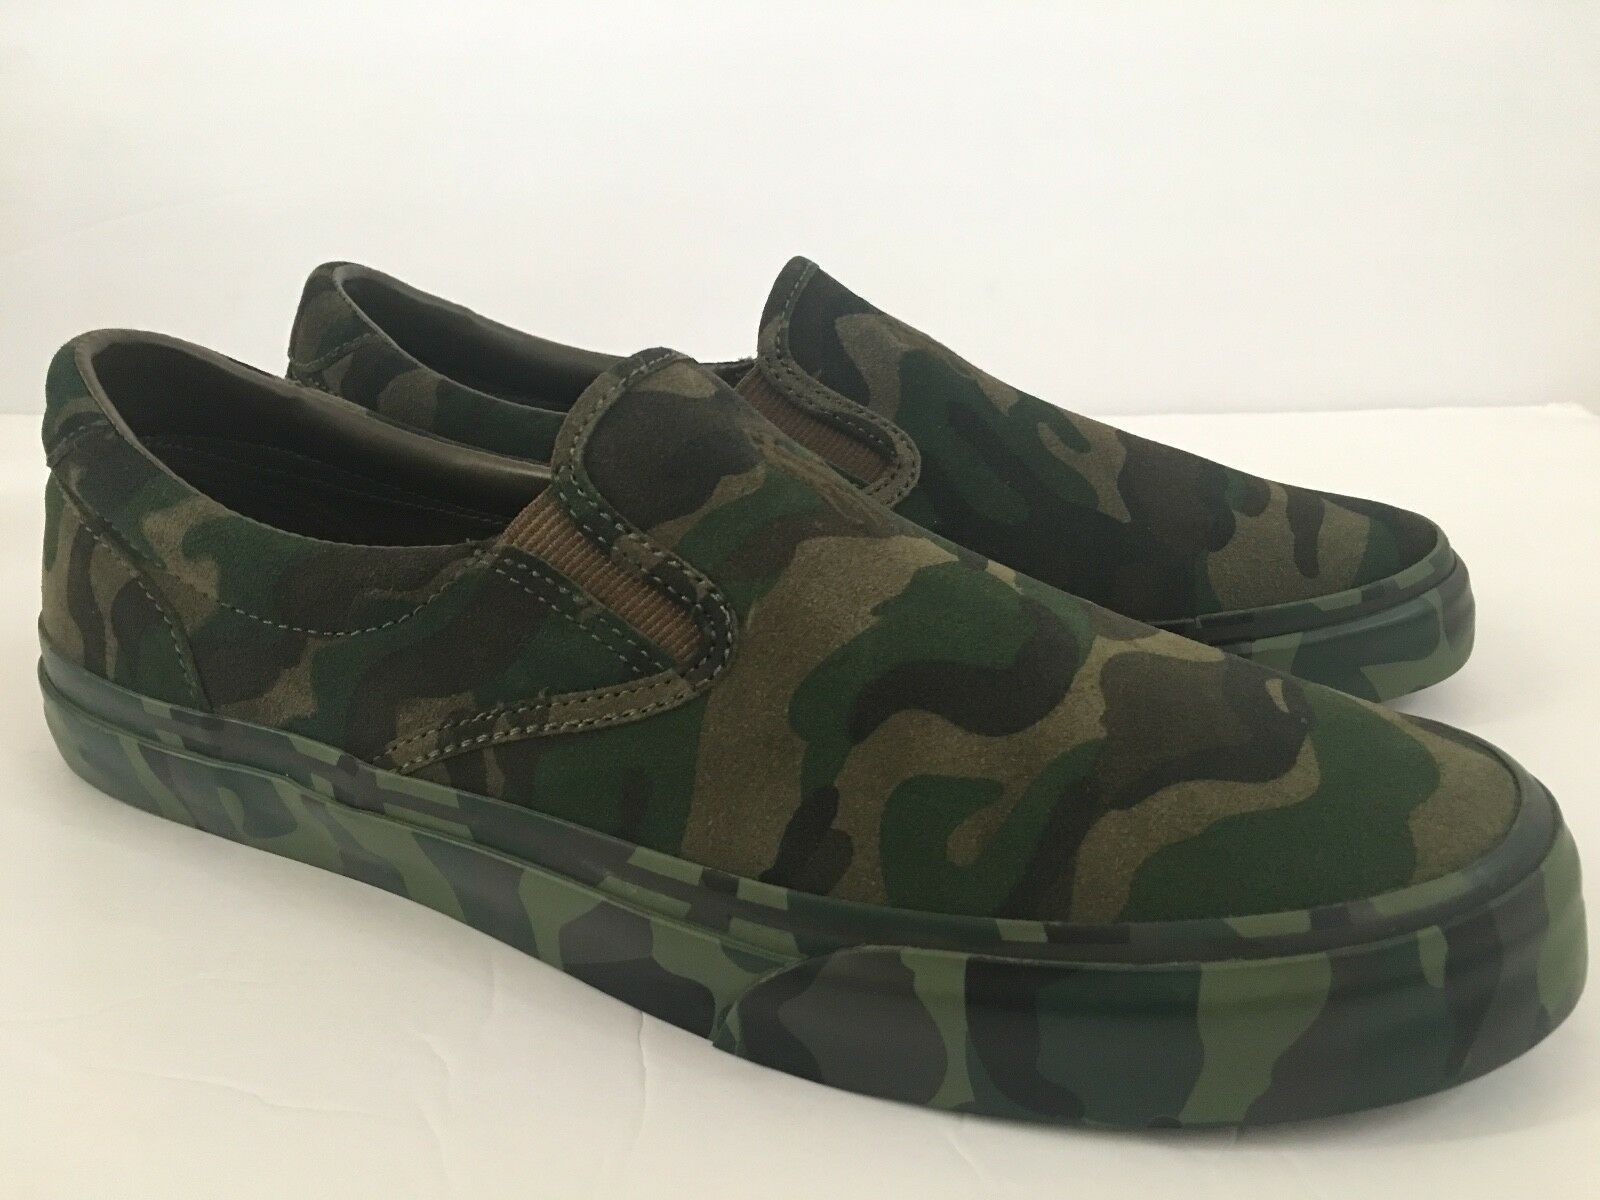 Polo Ralph Lauren Mens 11 D Thompson Sneakers Suede Olive Camouflage Slip On NIB